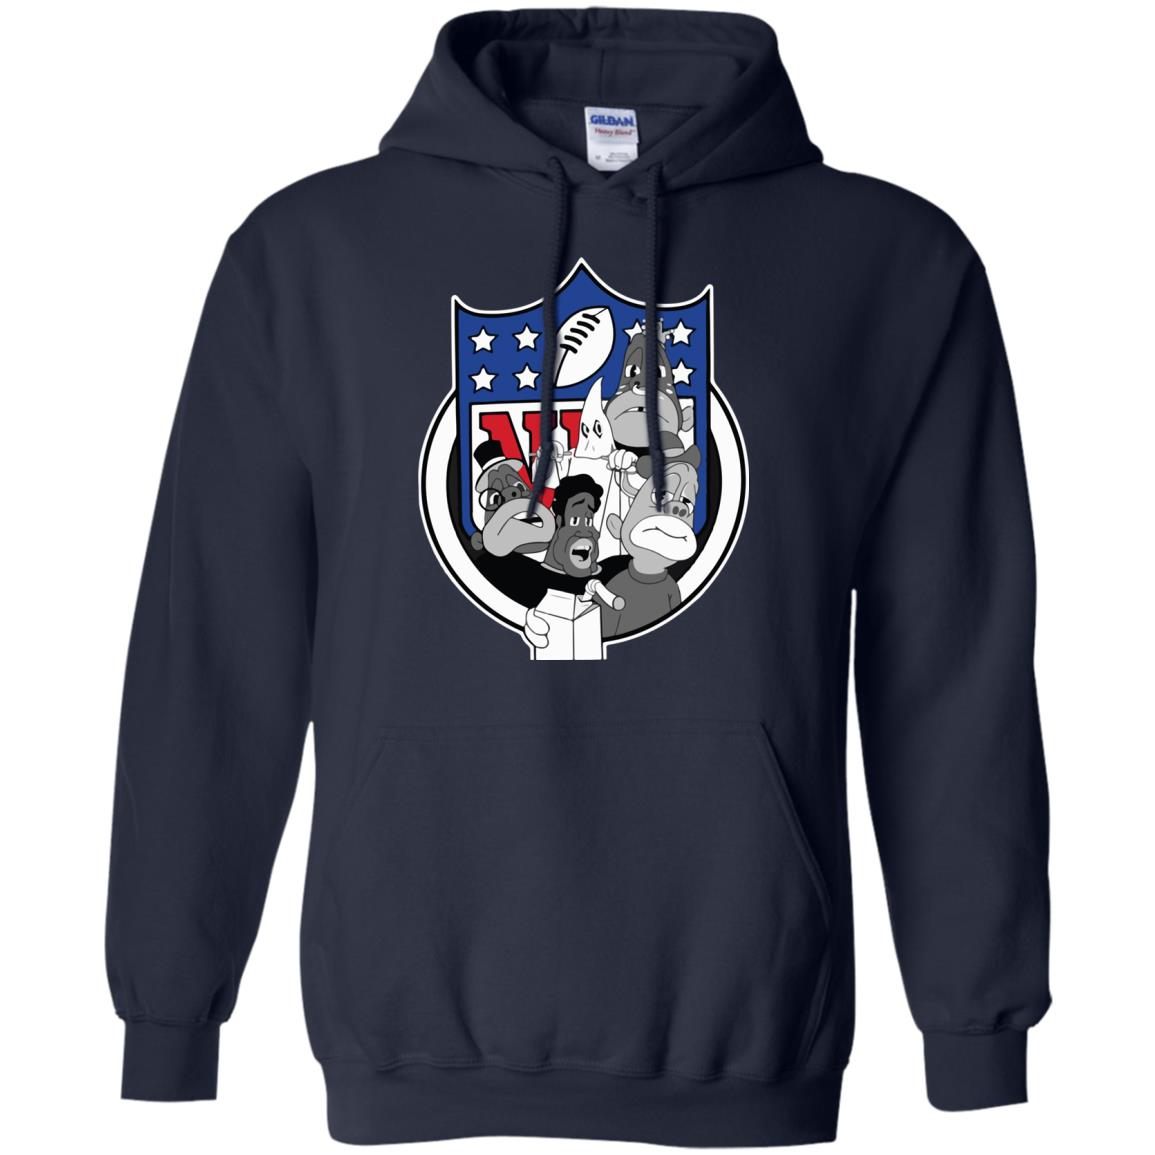 image 1491 - Snoop Dog The Story of O.J NFL shirt & sweatshirt